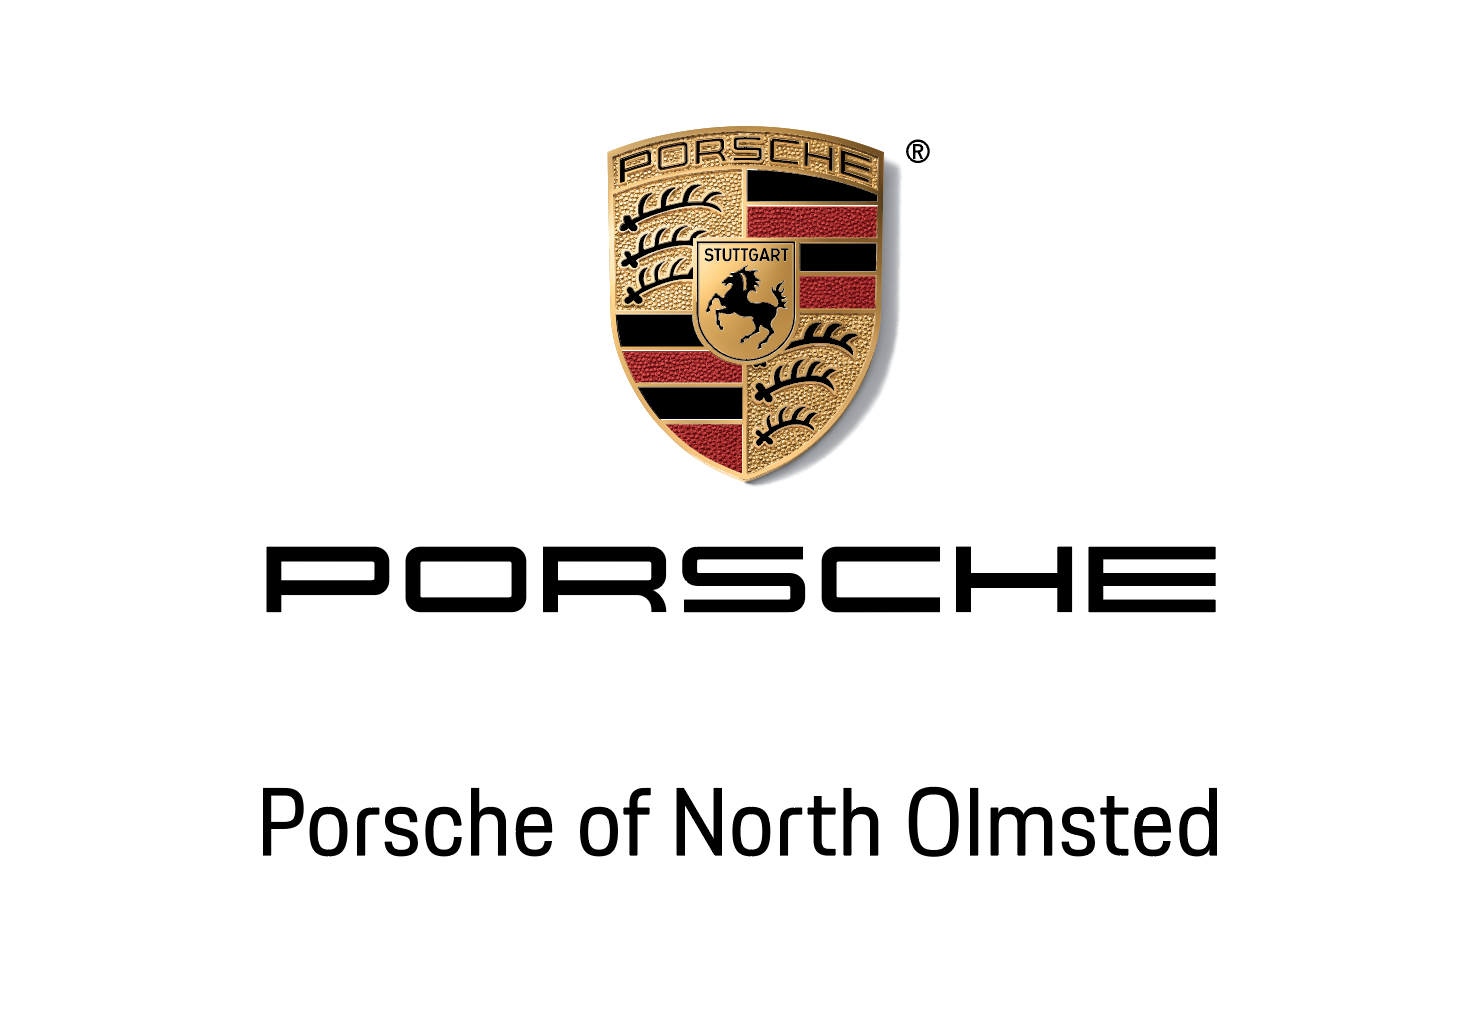 Cars and Cappuccino | Porsche of North Olmsted